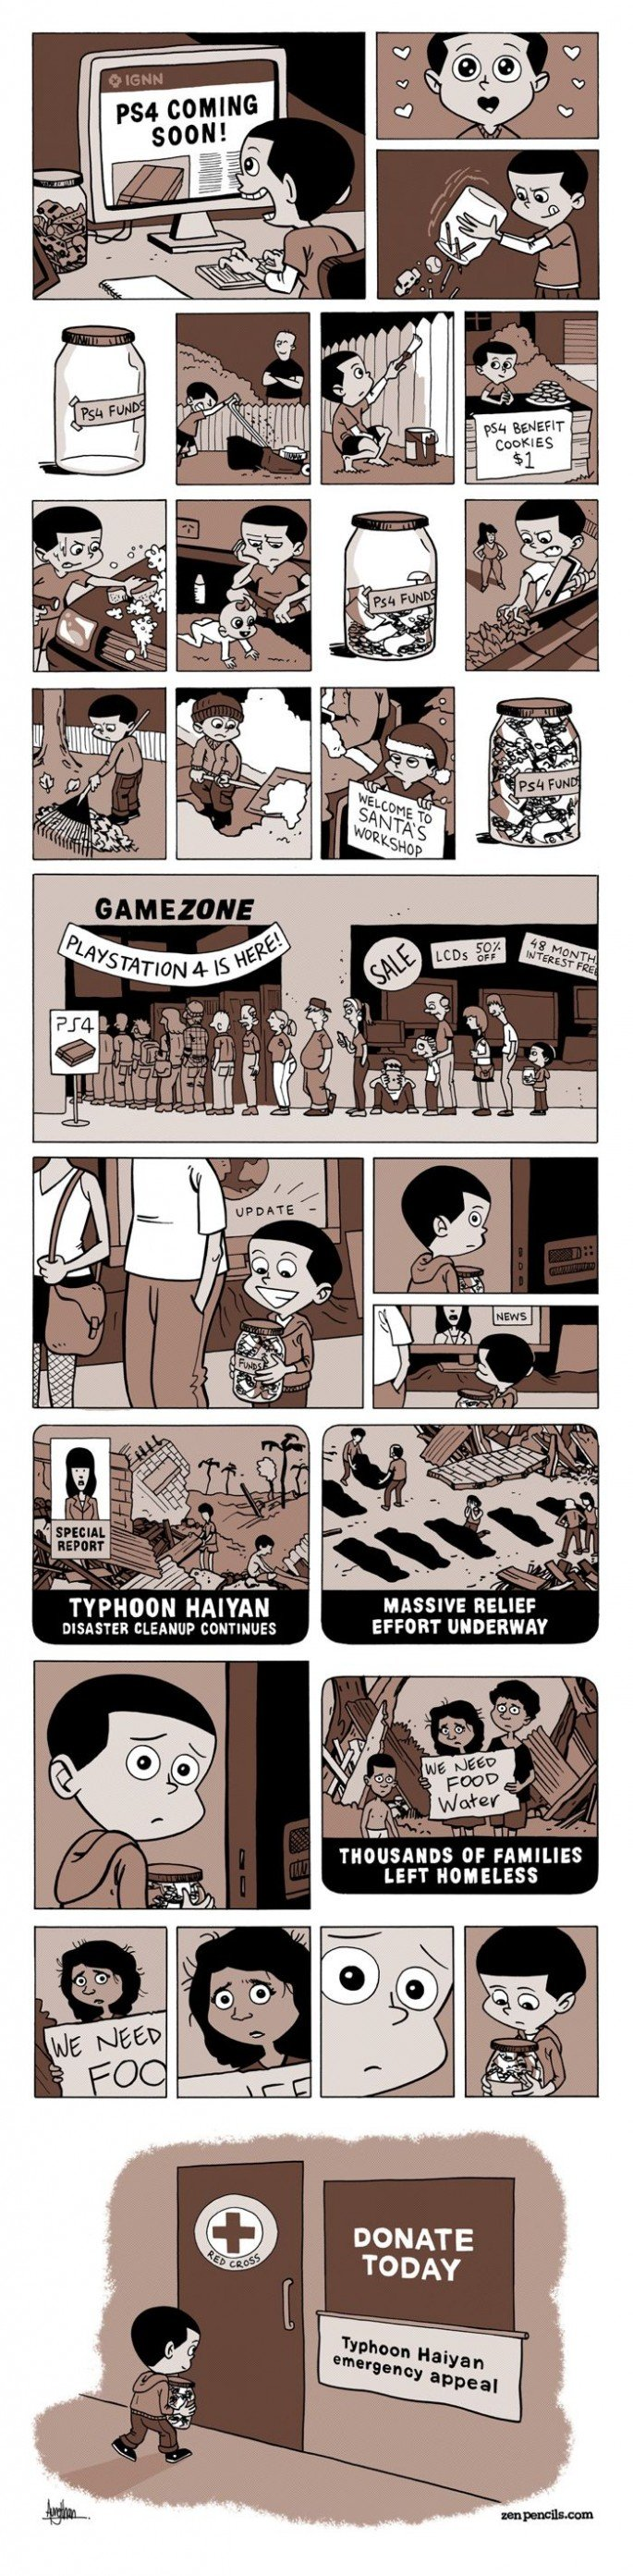 Typhoon Haiyan and The Next Generation [Comic]